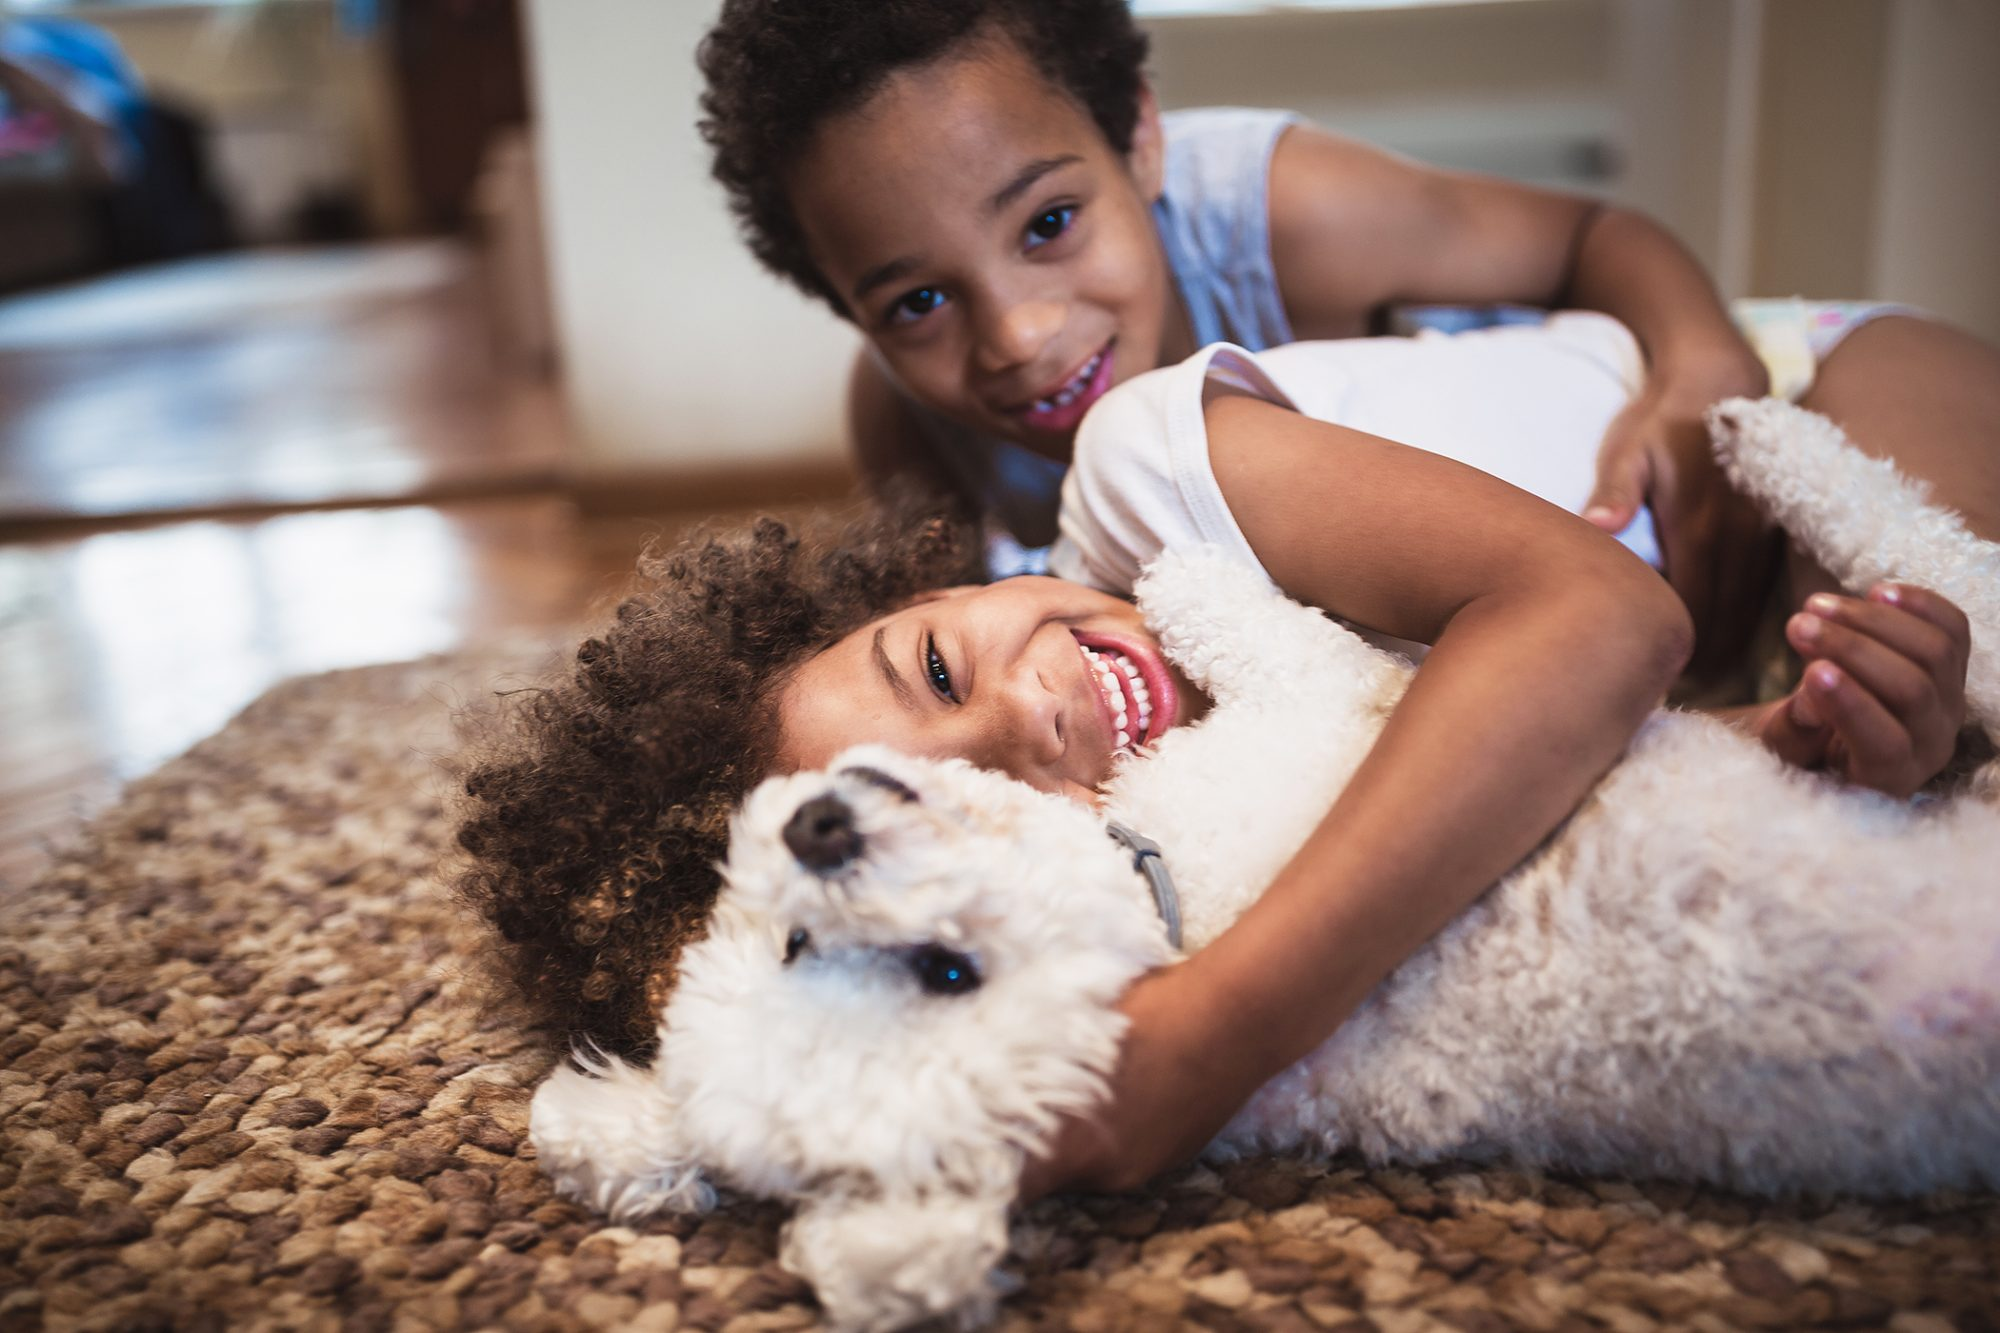 Young Black brother and sister cuddle with white small curly-haired dog on floor